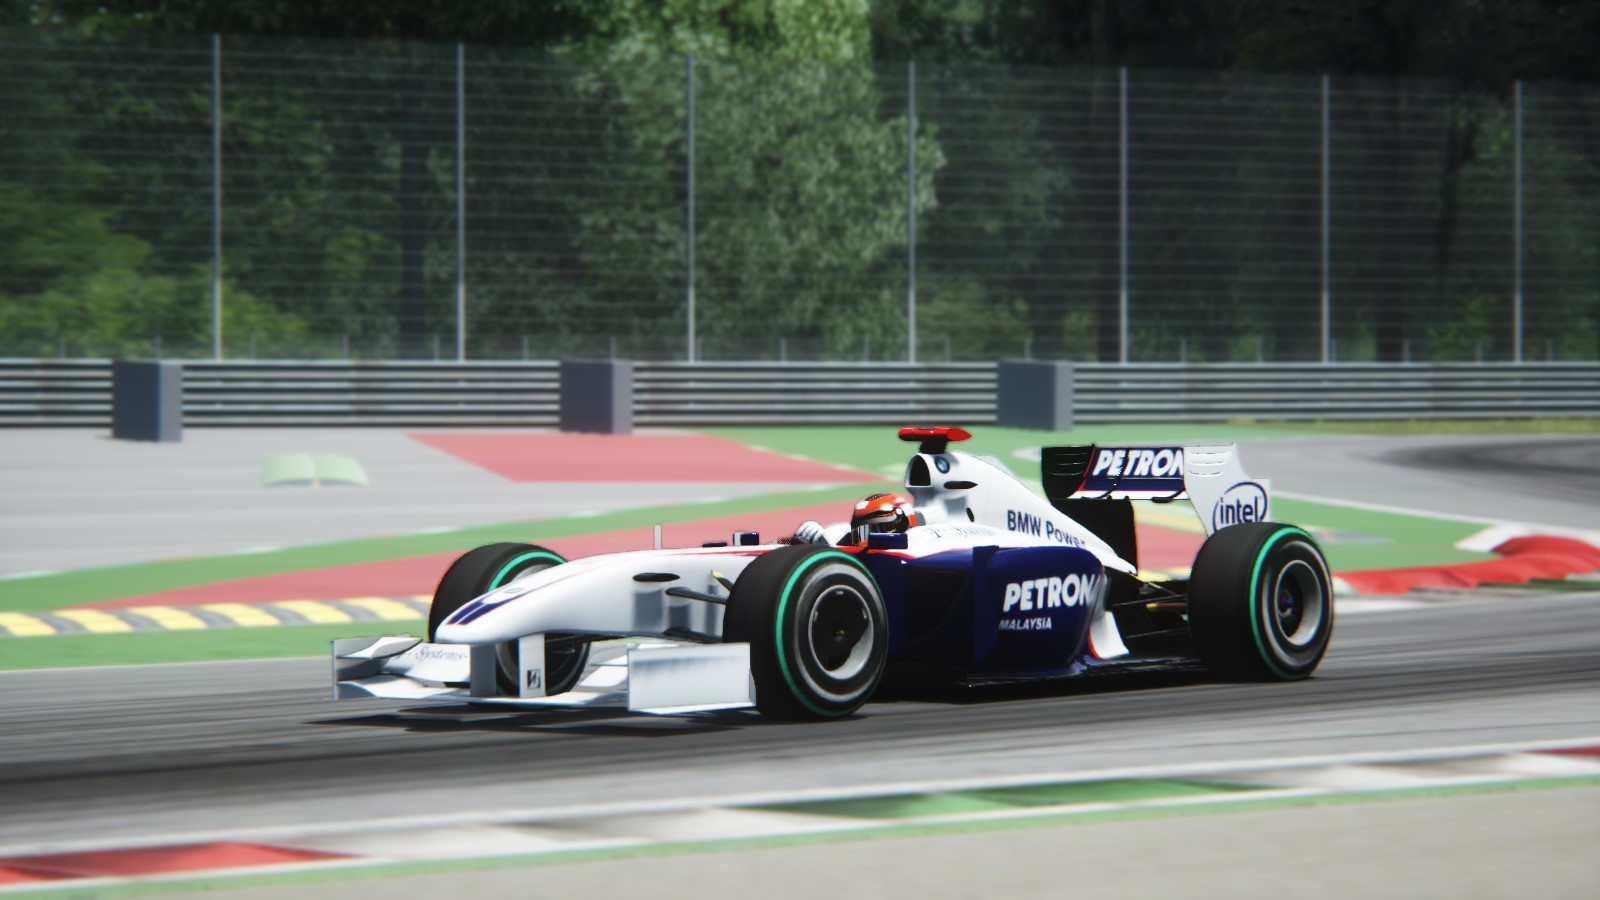 Screenshot_fc1_2009_williams_fw31_monza_7-5-115-14-38-30.jpg